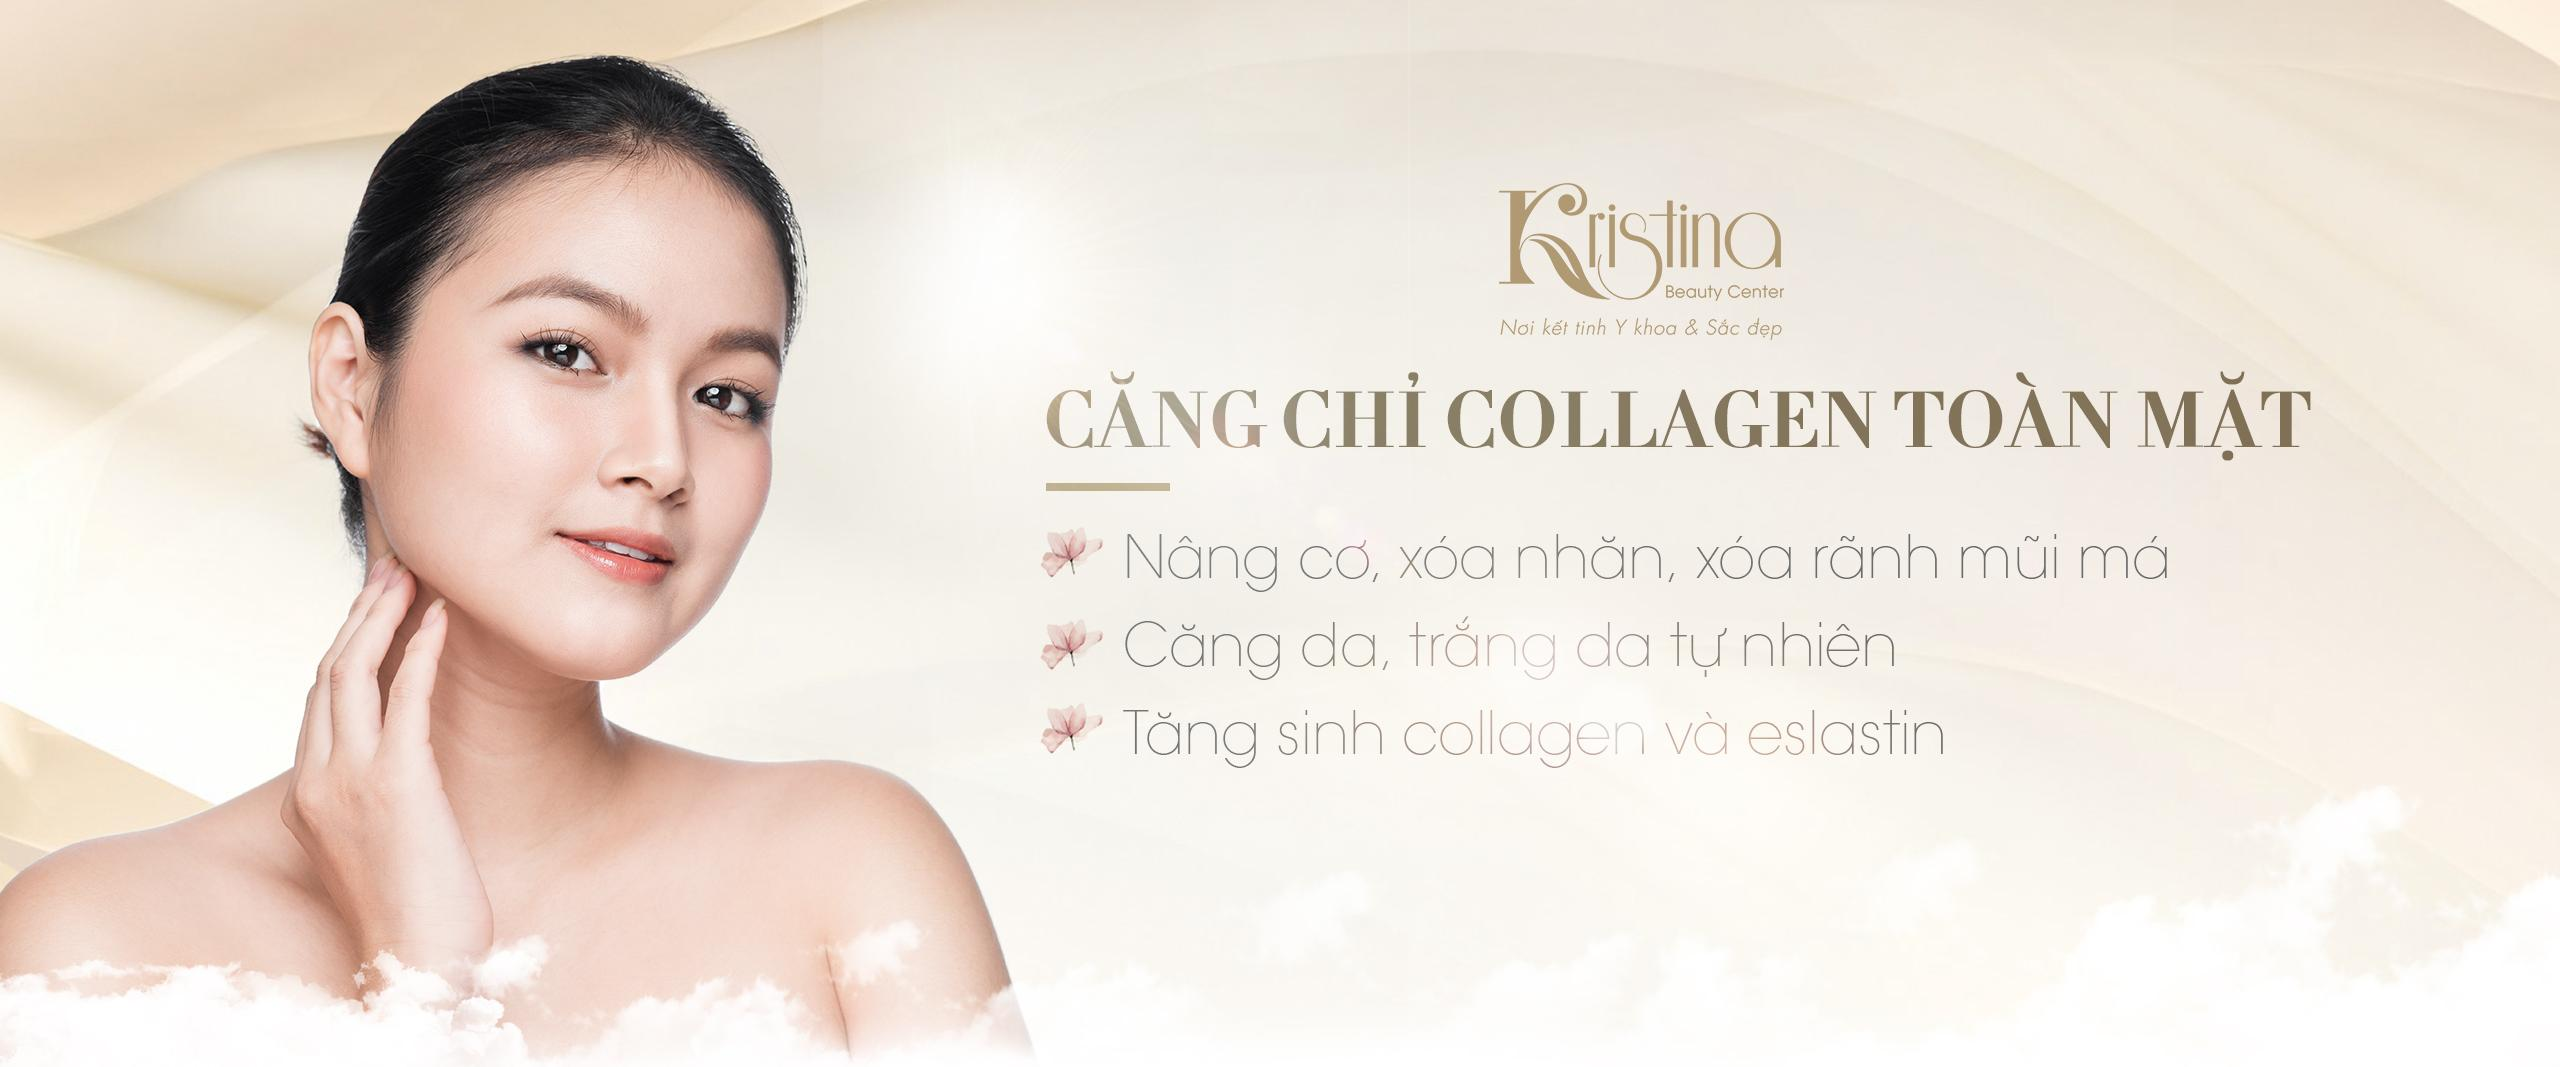 Cang chi collagen